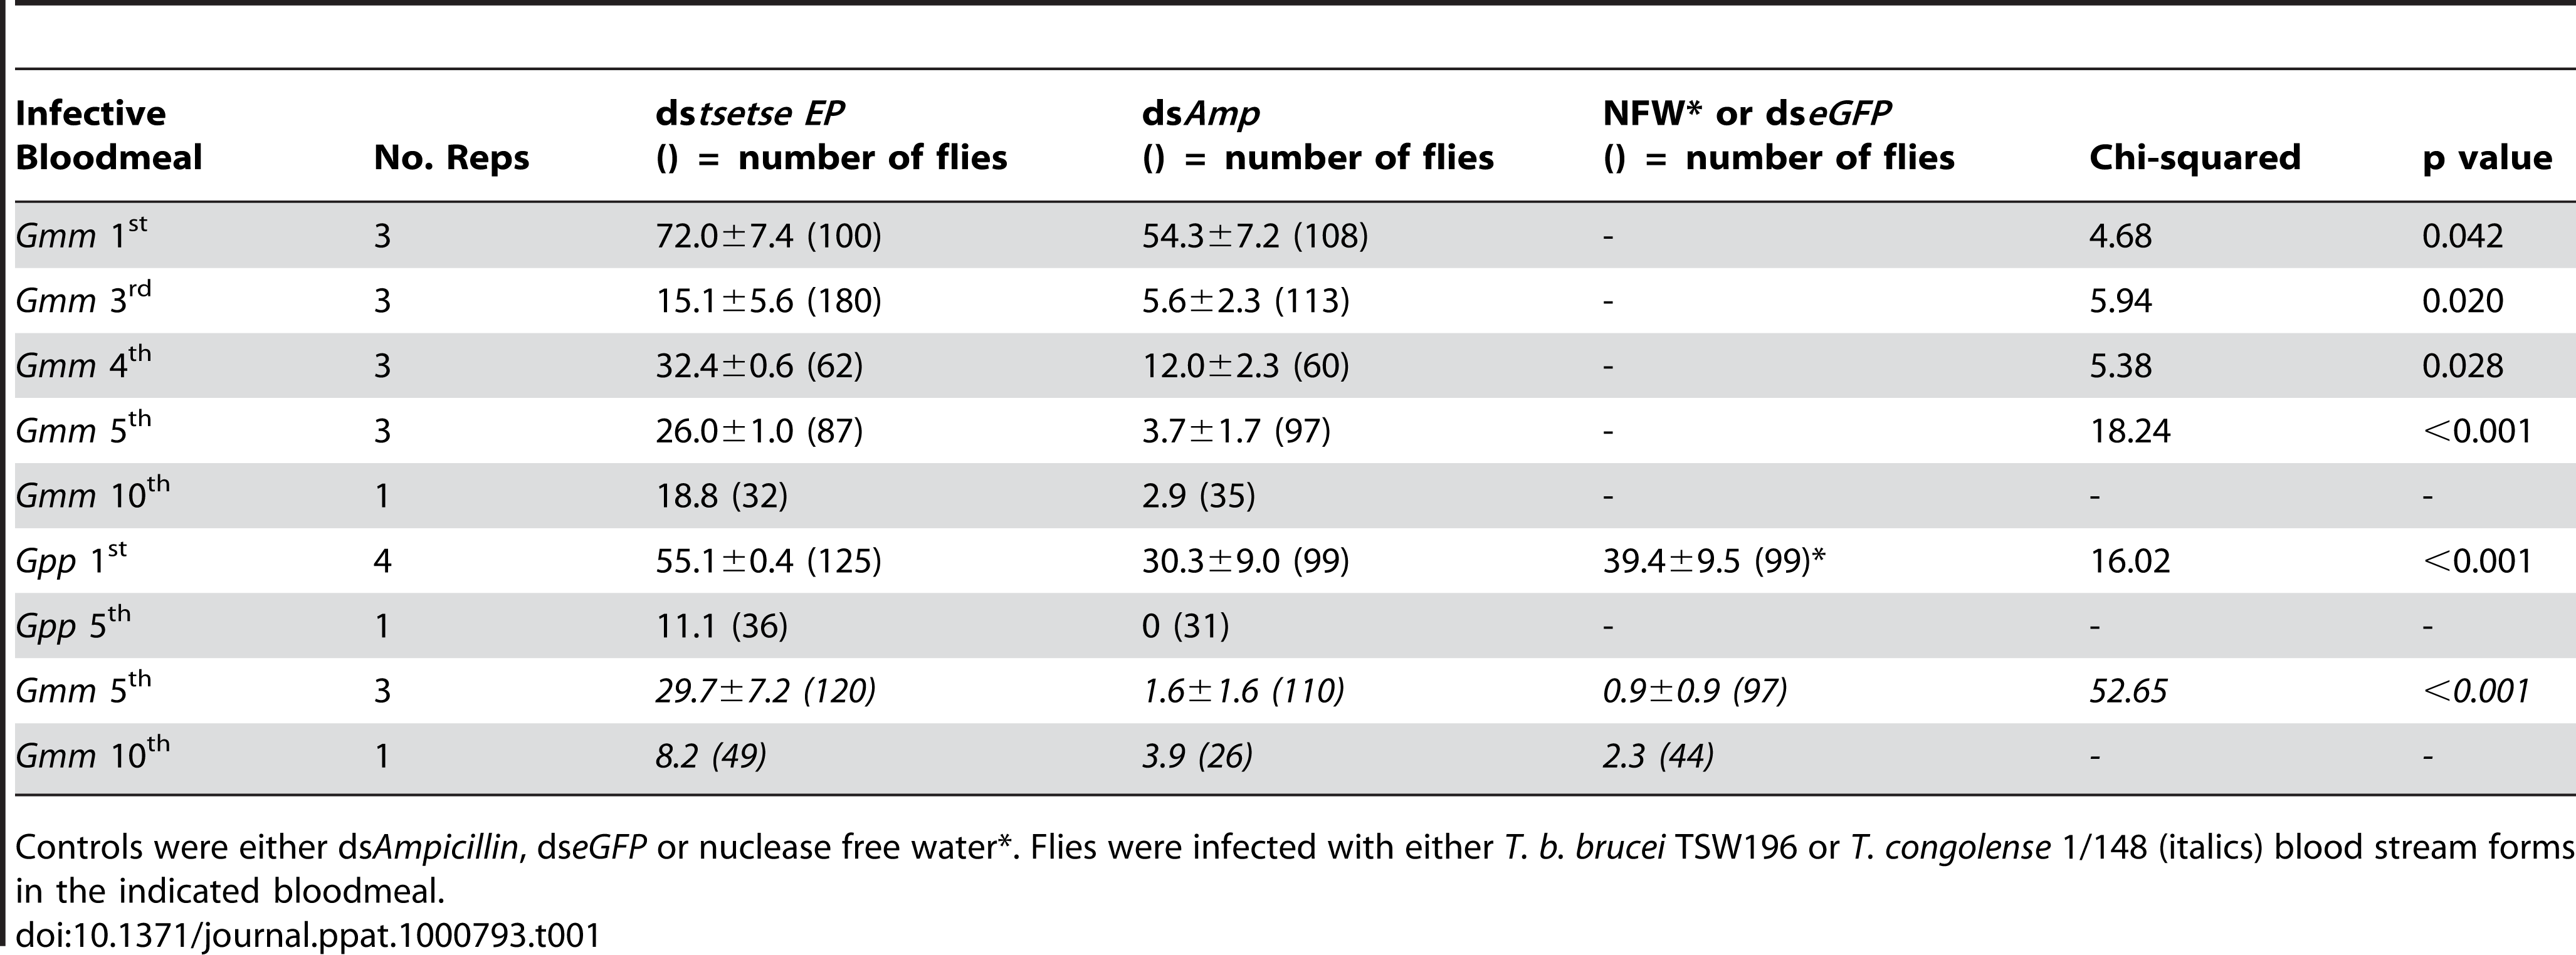 Mean (± S.E.) prevalence of midgut infections in male <i>G. m. morsitans</i> (<i>Gmm</i>) or <i>G. p. palpalis</i> (<i>Gpp</i>) after RNAi knockdown using ds<i>tsetse EP</i>.